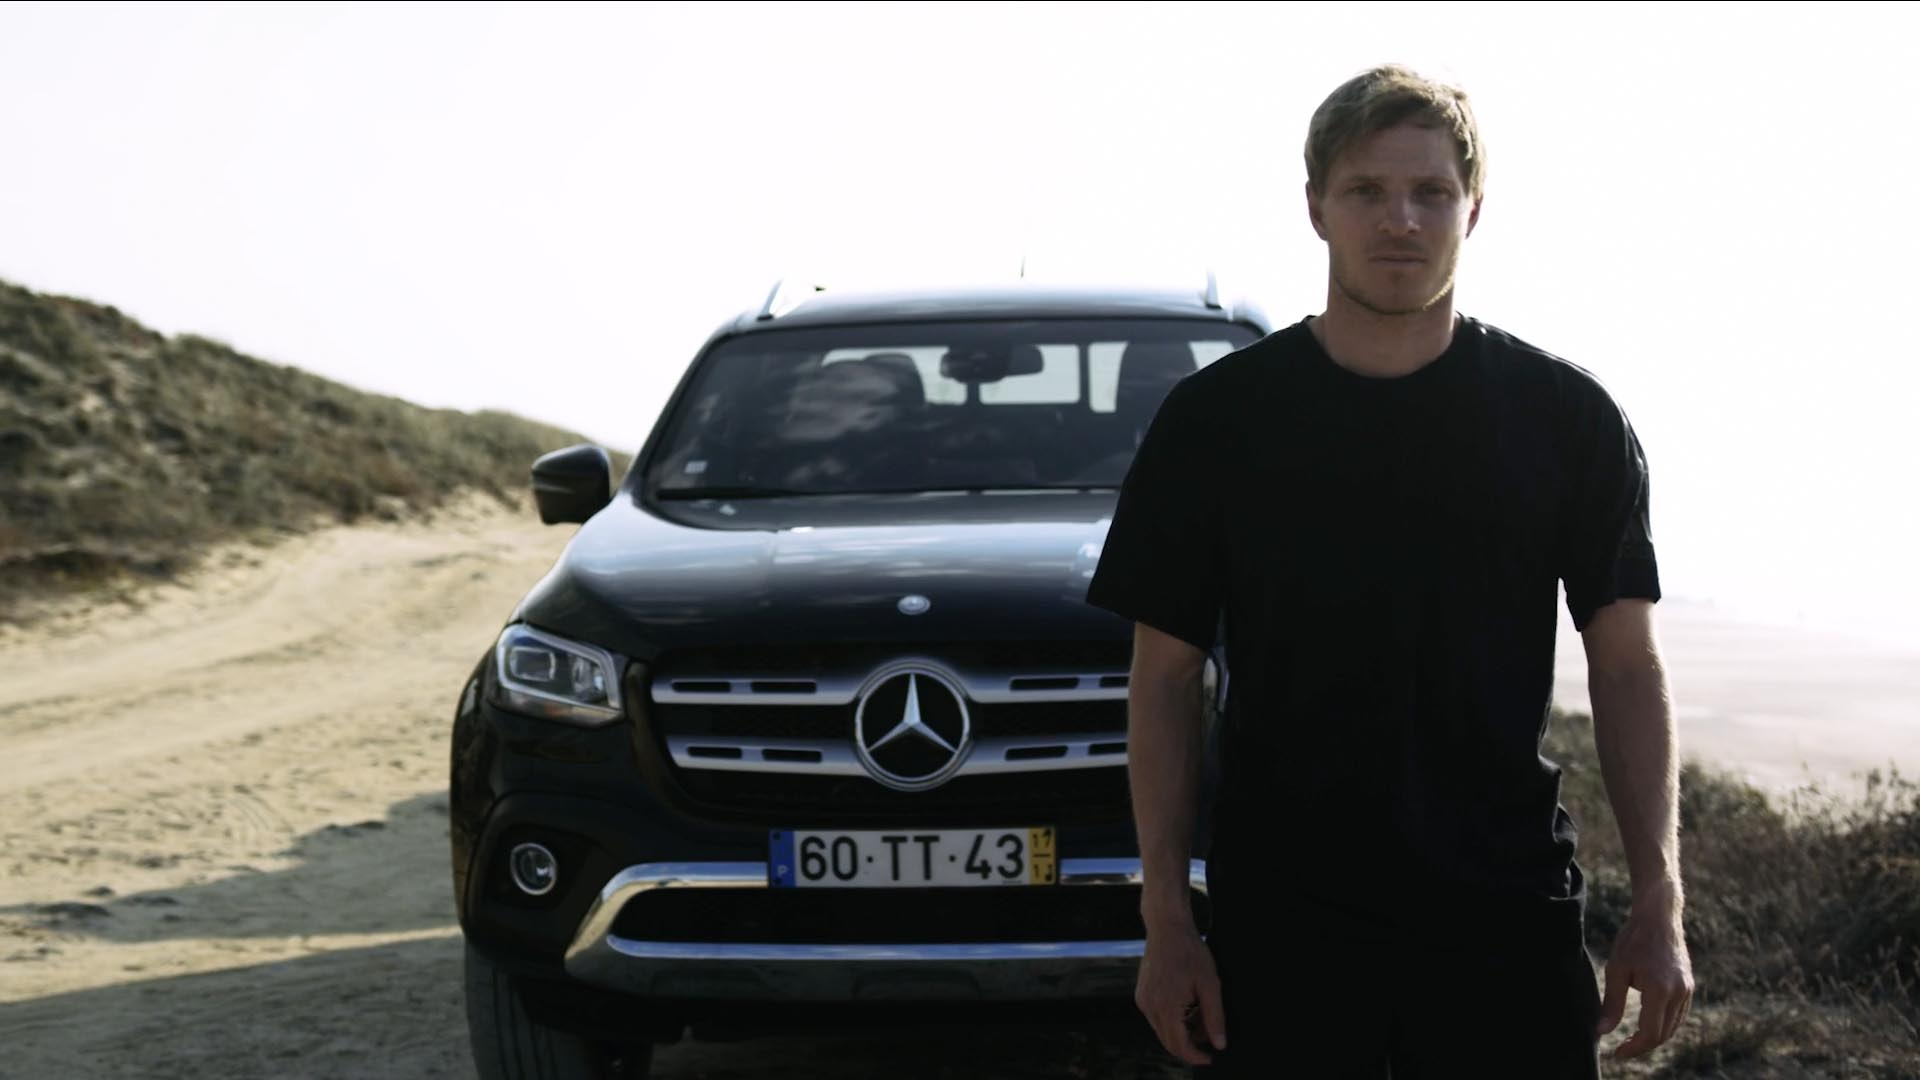 Mercedes-Benz, x-class, commercial, production, yolo films, Portugal, Nazaré, films production service, local crew, international commercial production